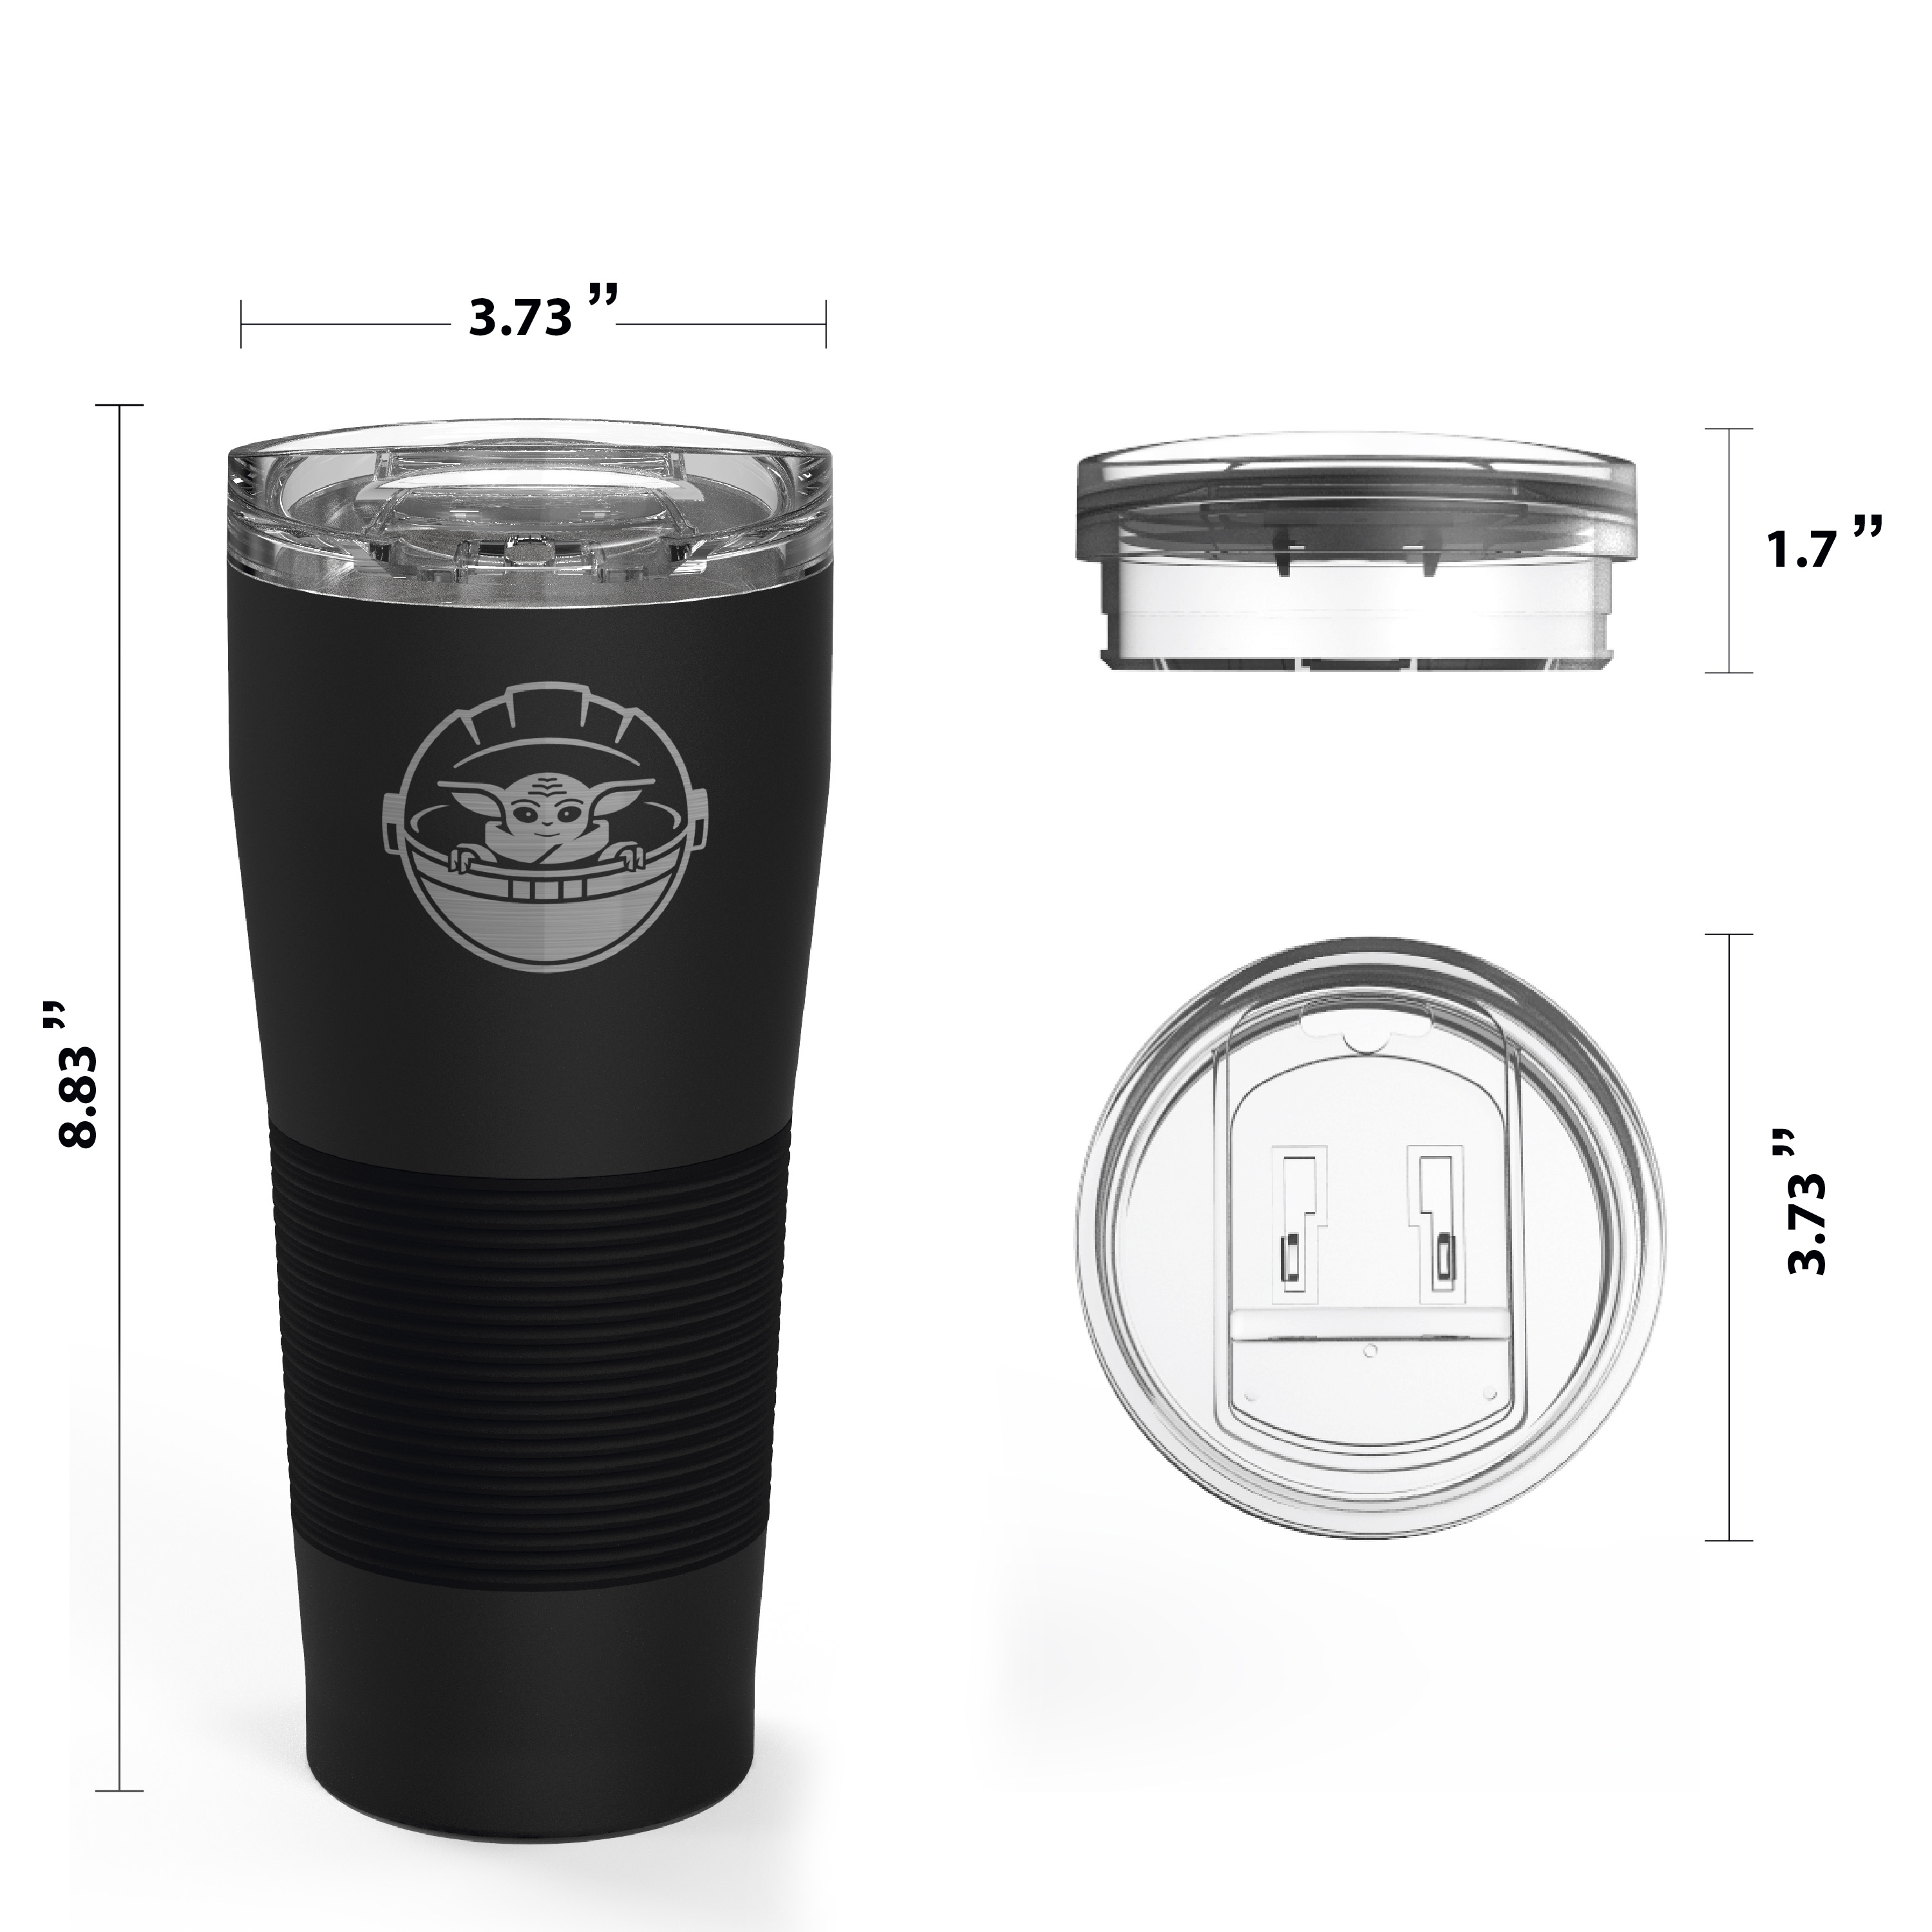 Star Wars: The Mandalorian 28 ounce Vacuum Insulated Stainless Steel Tumbler, The Child slideshow image 7